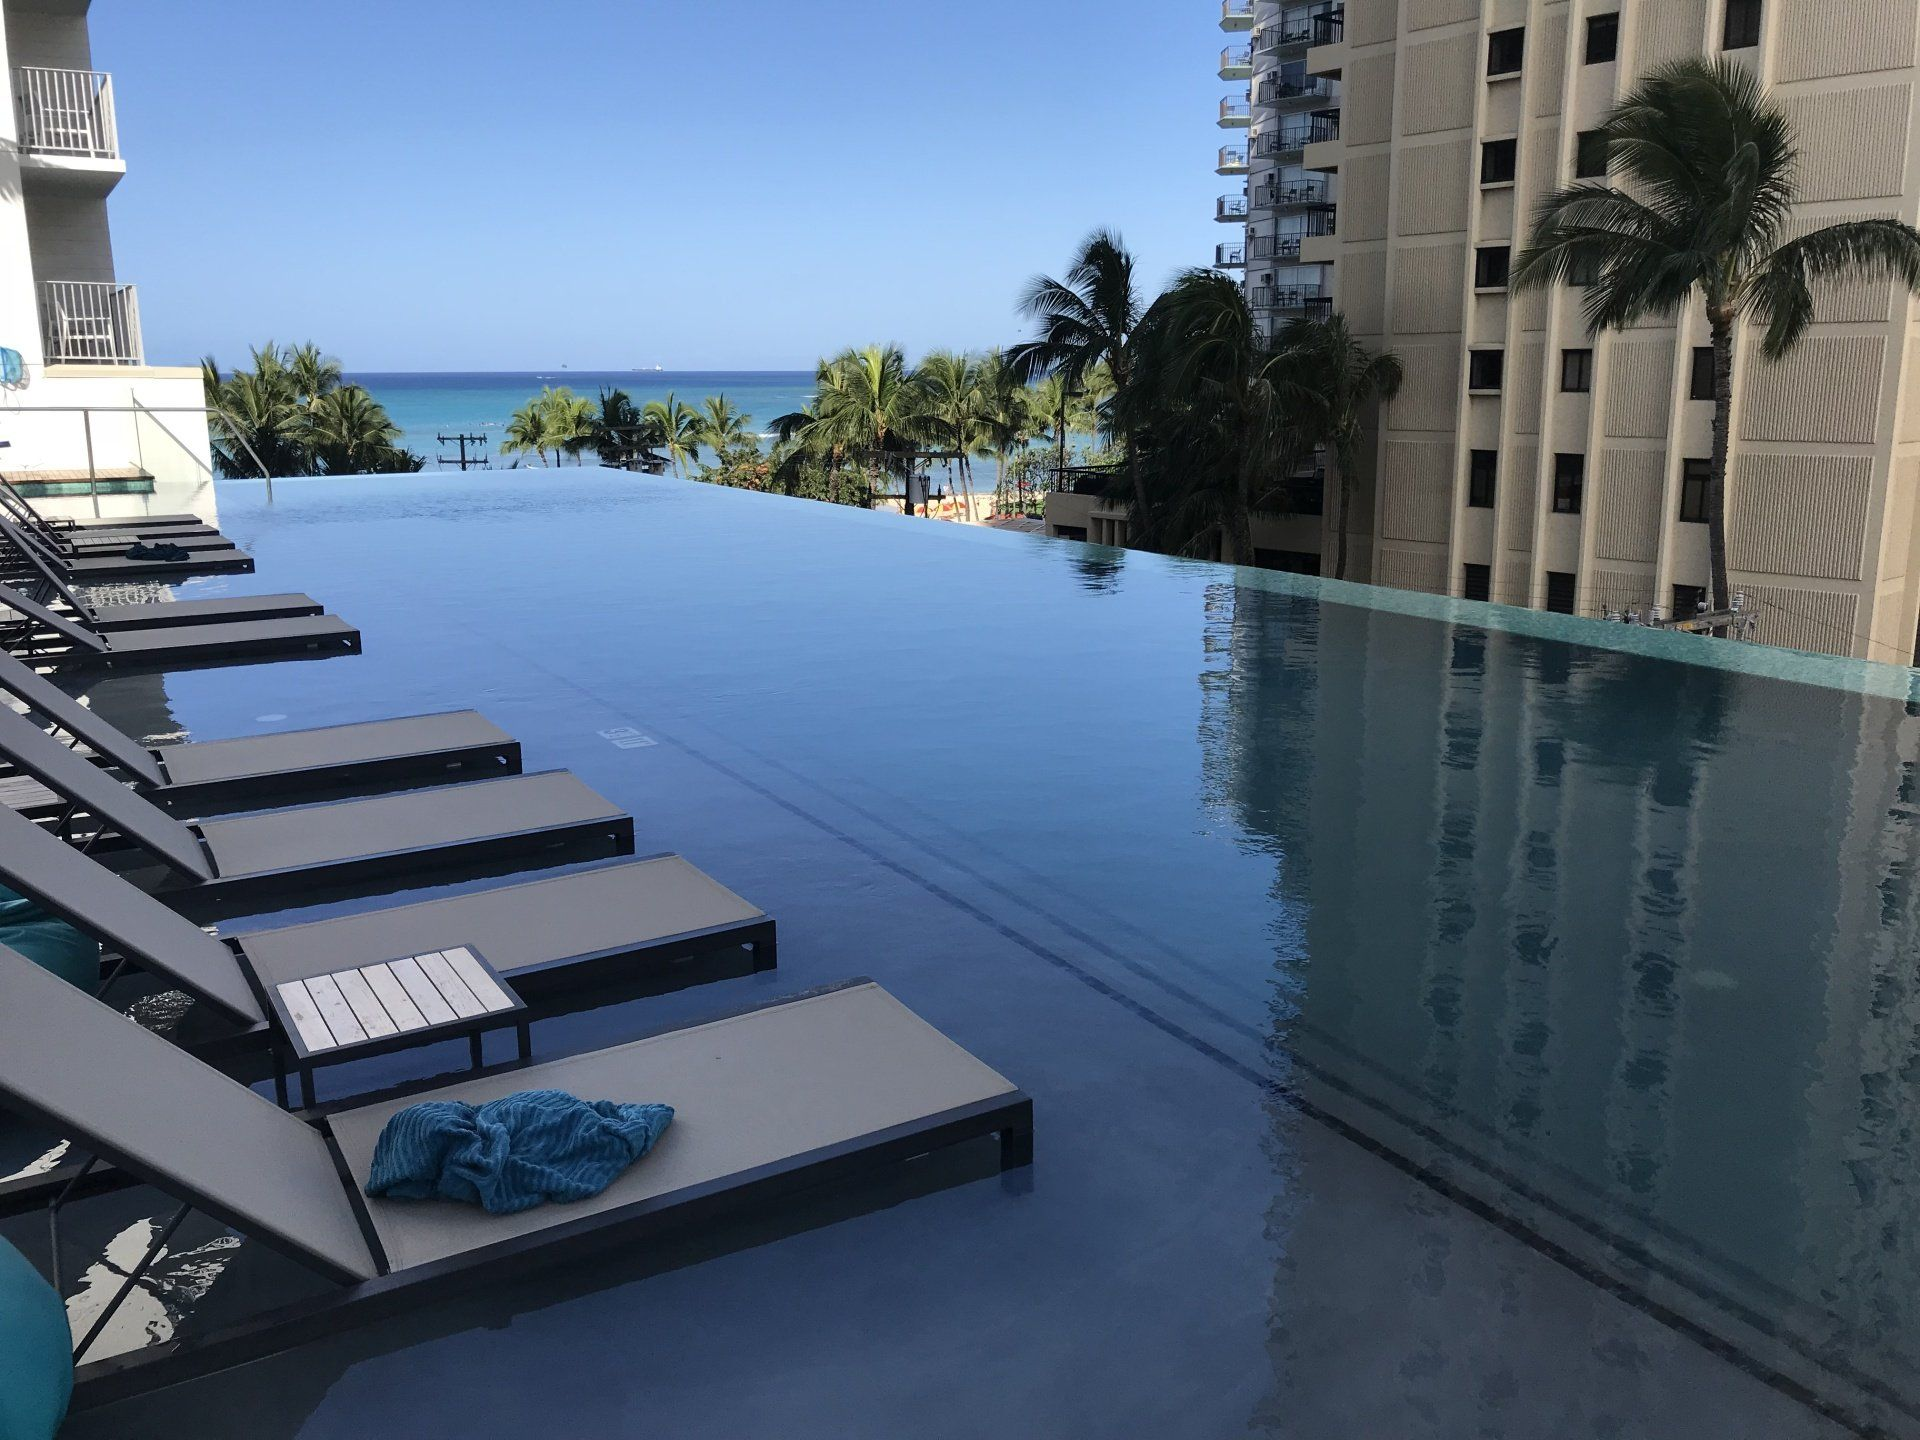 This Swimming Pool Is Really Great I Love The Fact That The Water Is Up To The Seats It D Be Nice Salt Water Pool Maintenance Saltwater Pool Pool Maintenance